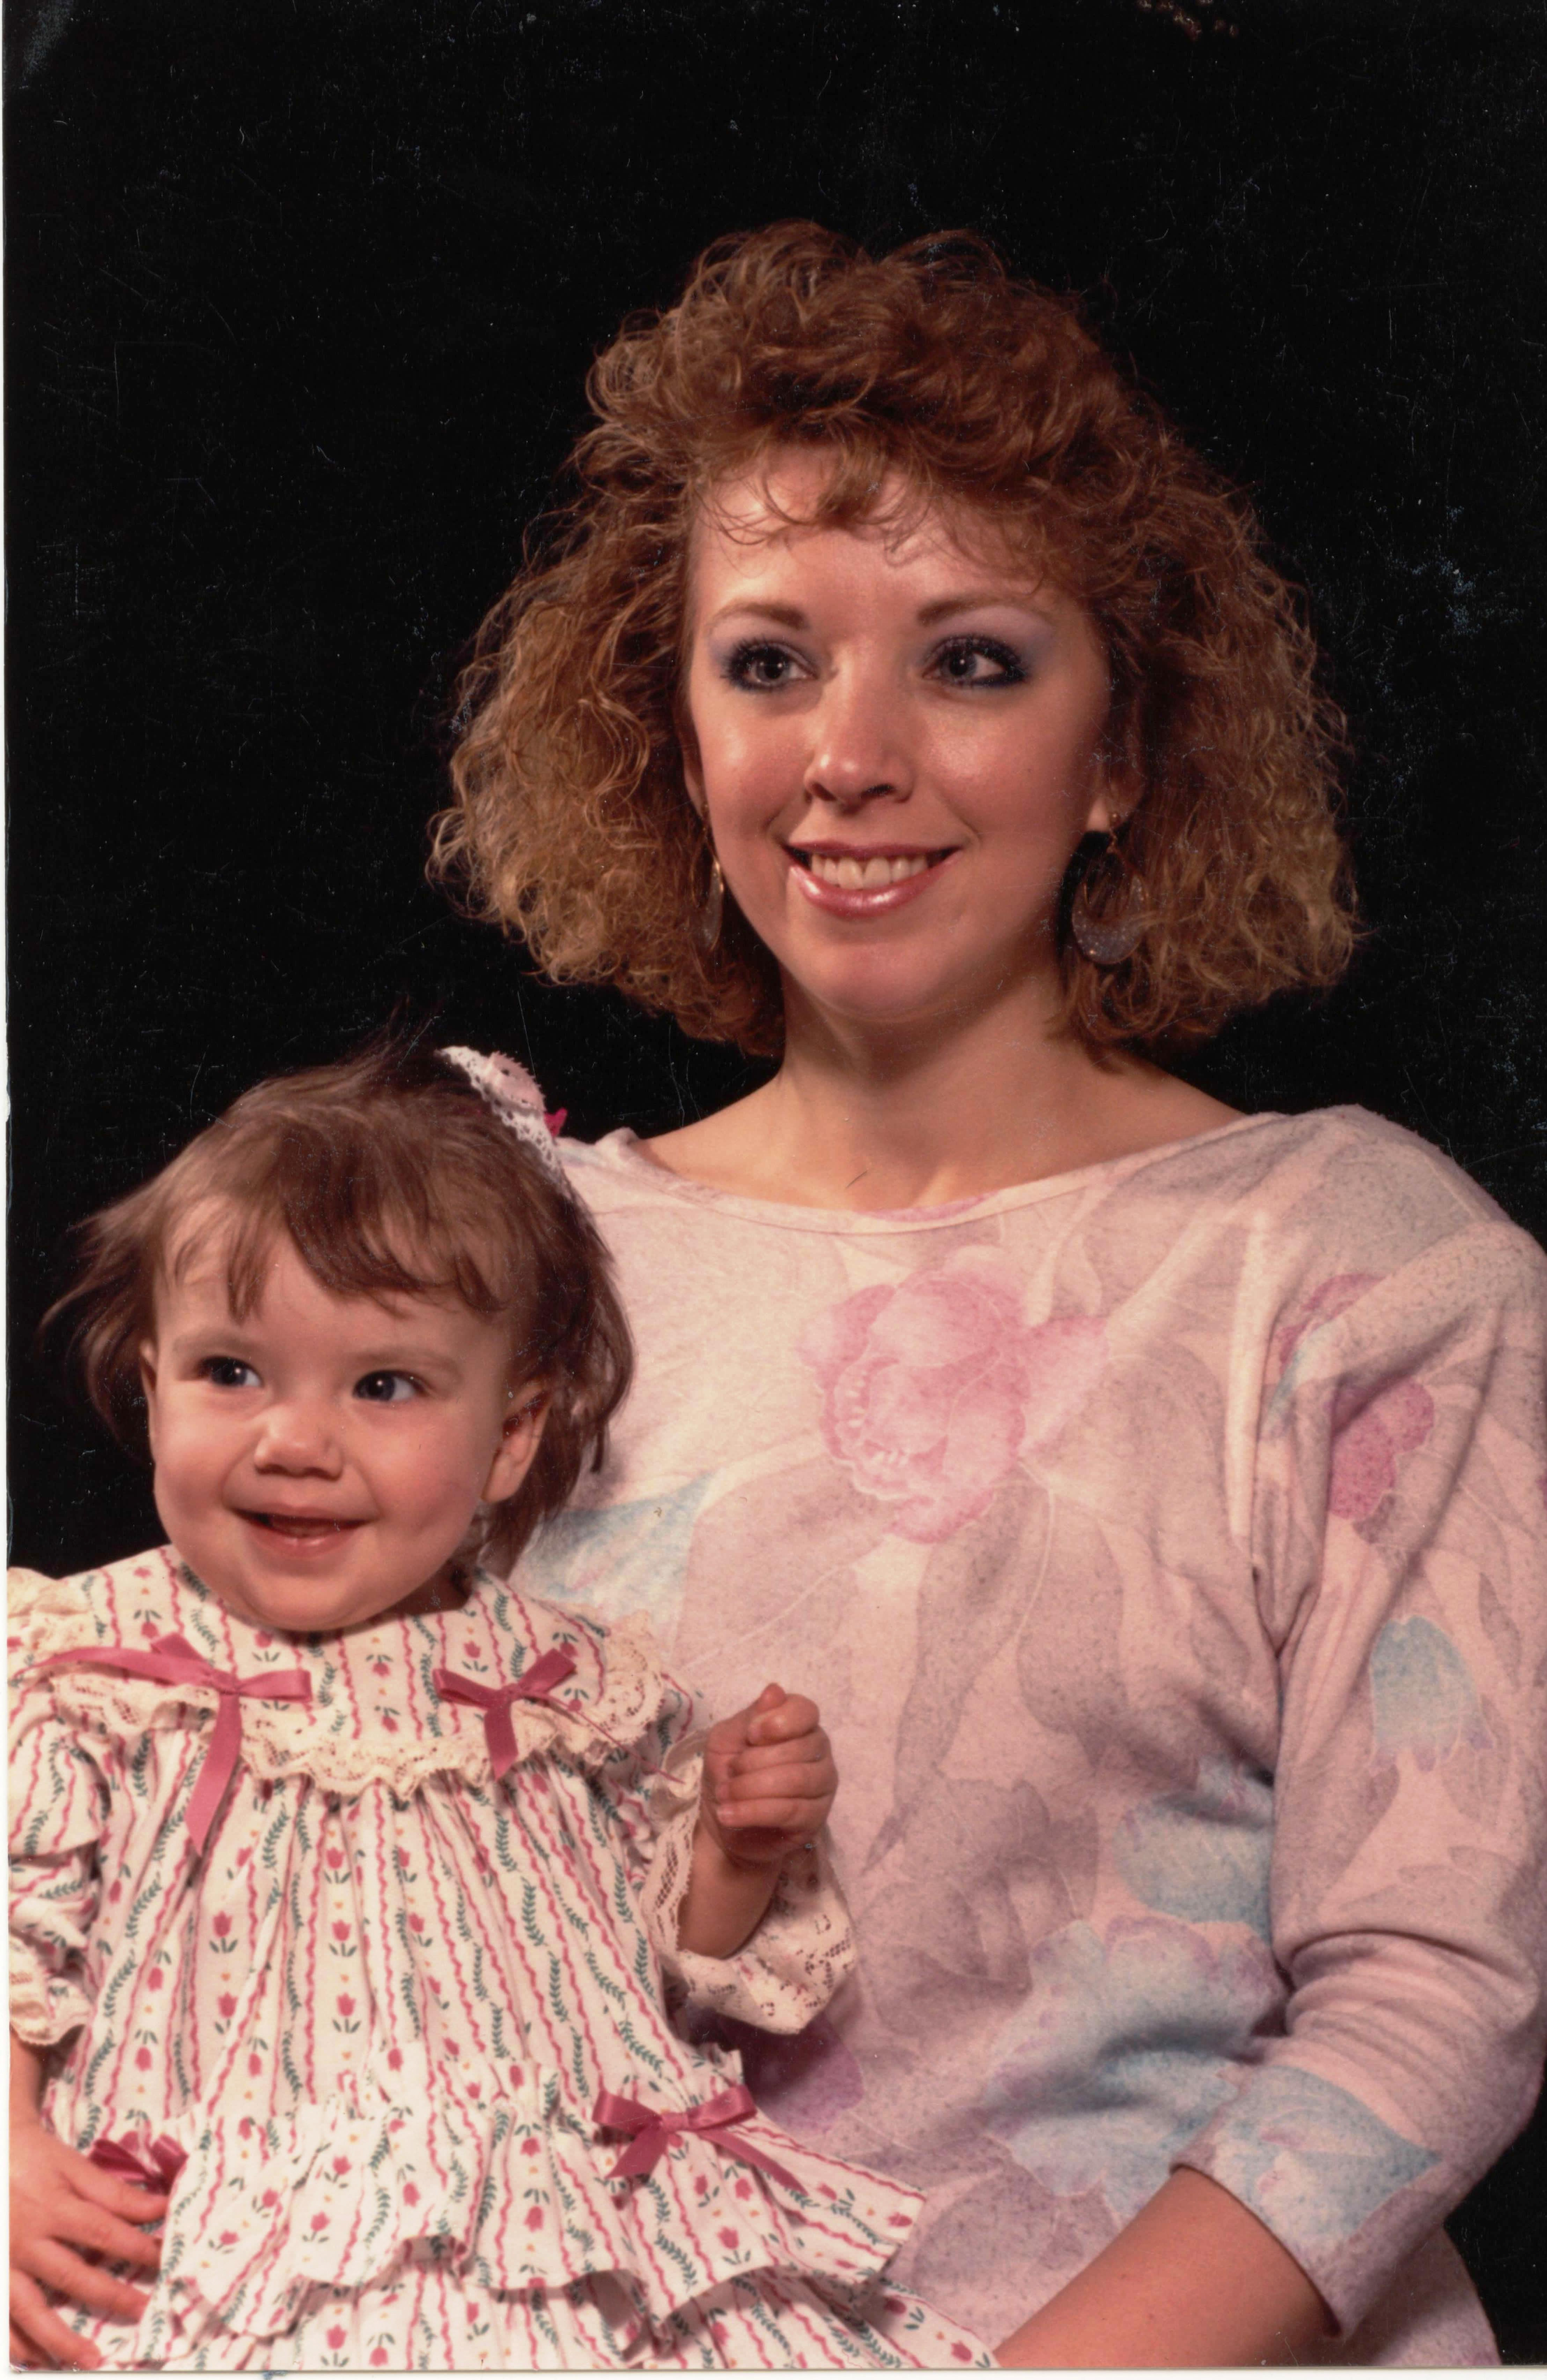 stormie-with-mommy-1986.JPG